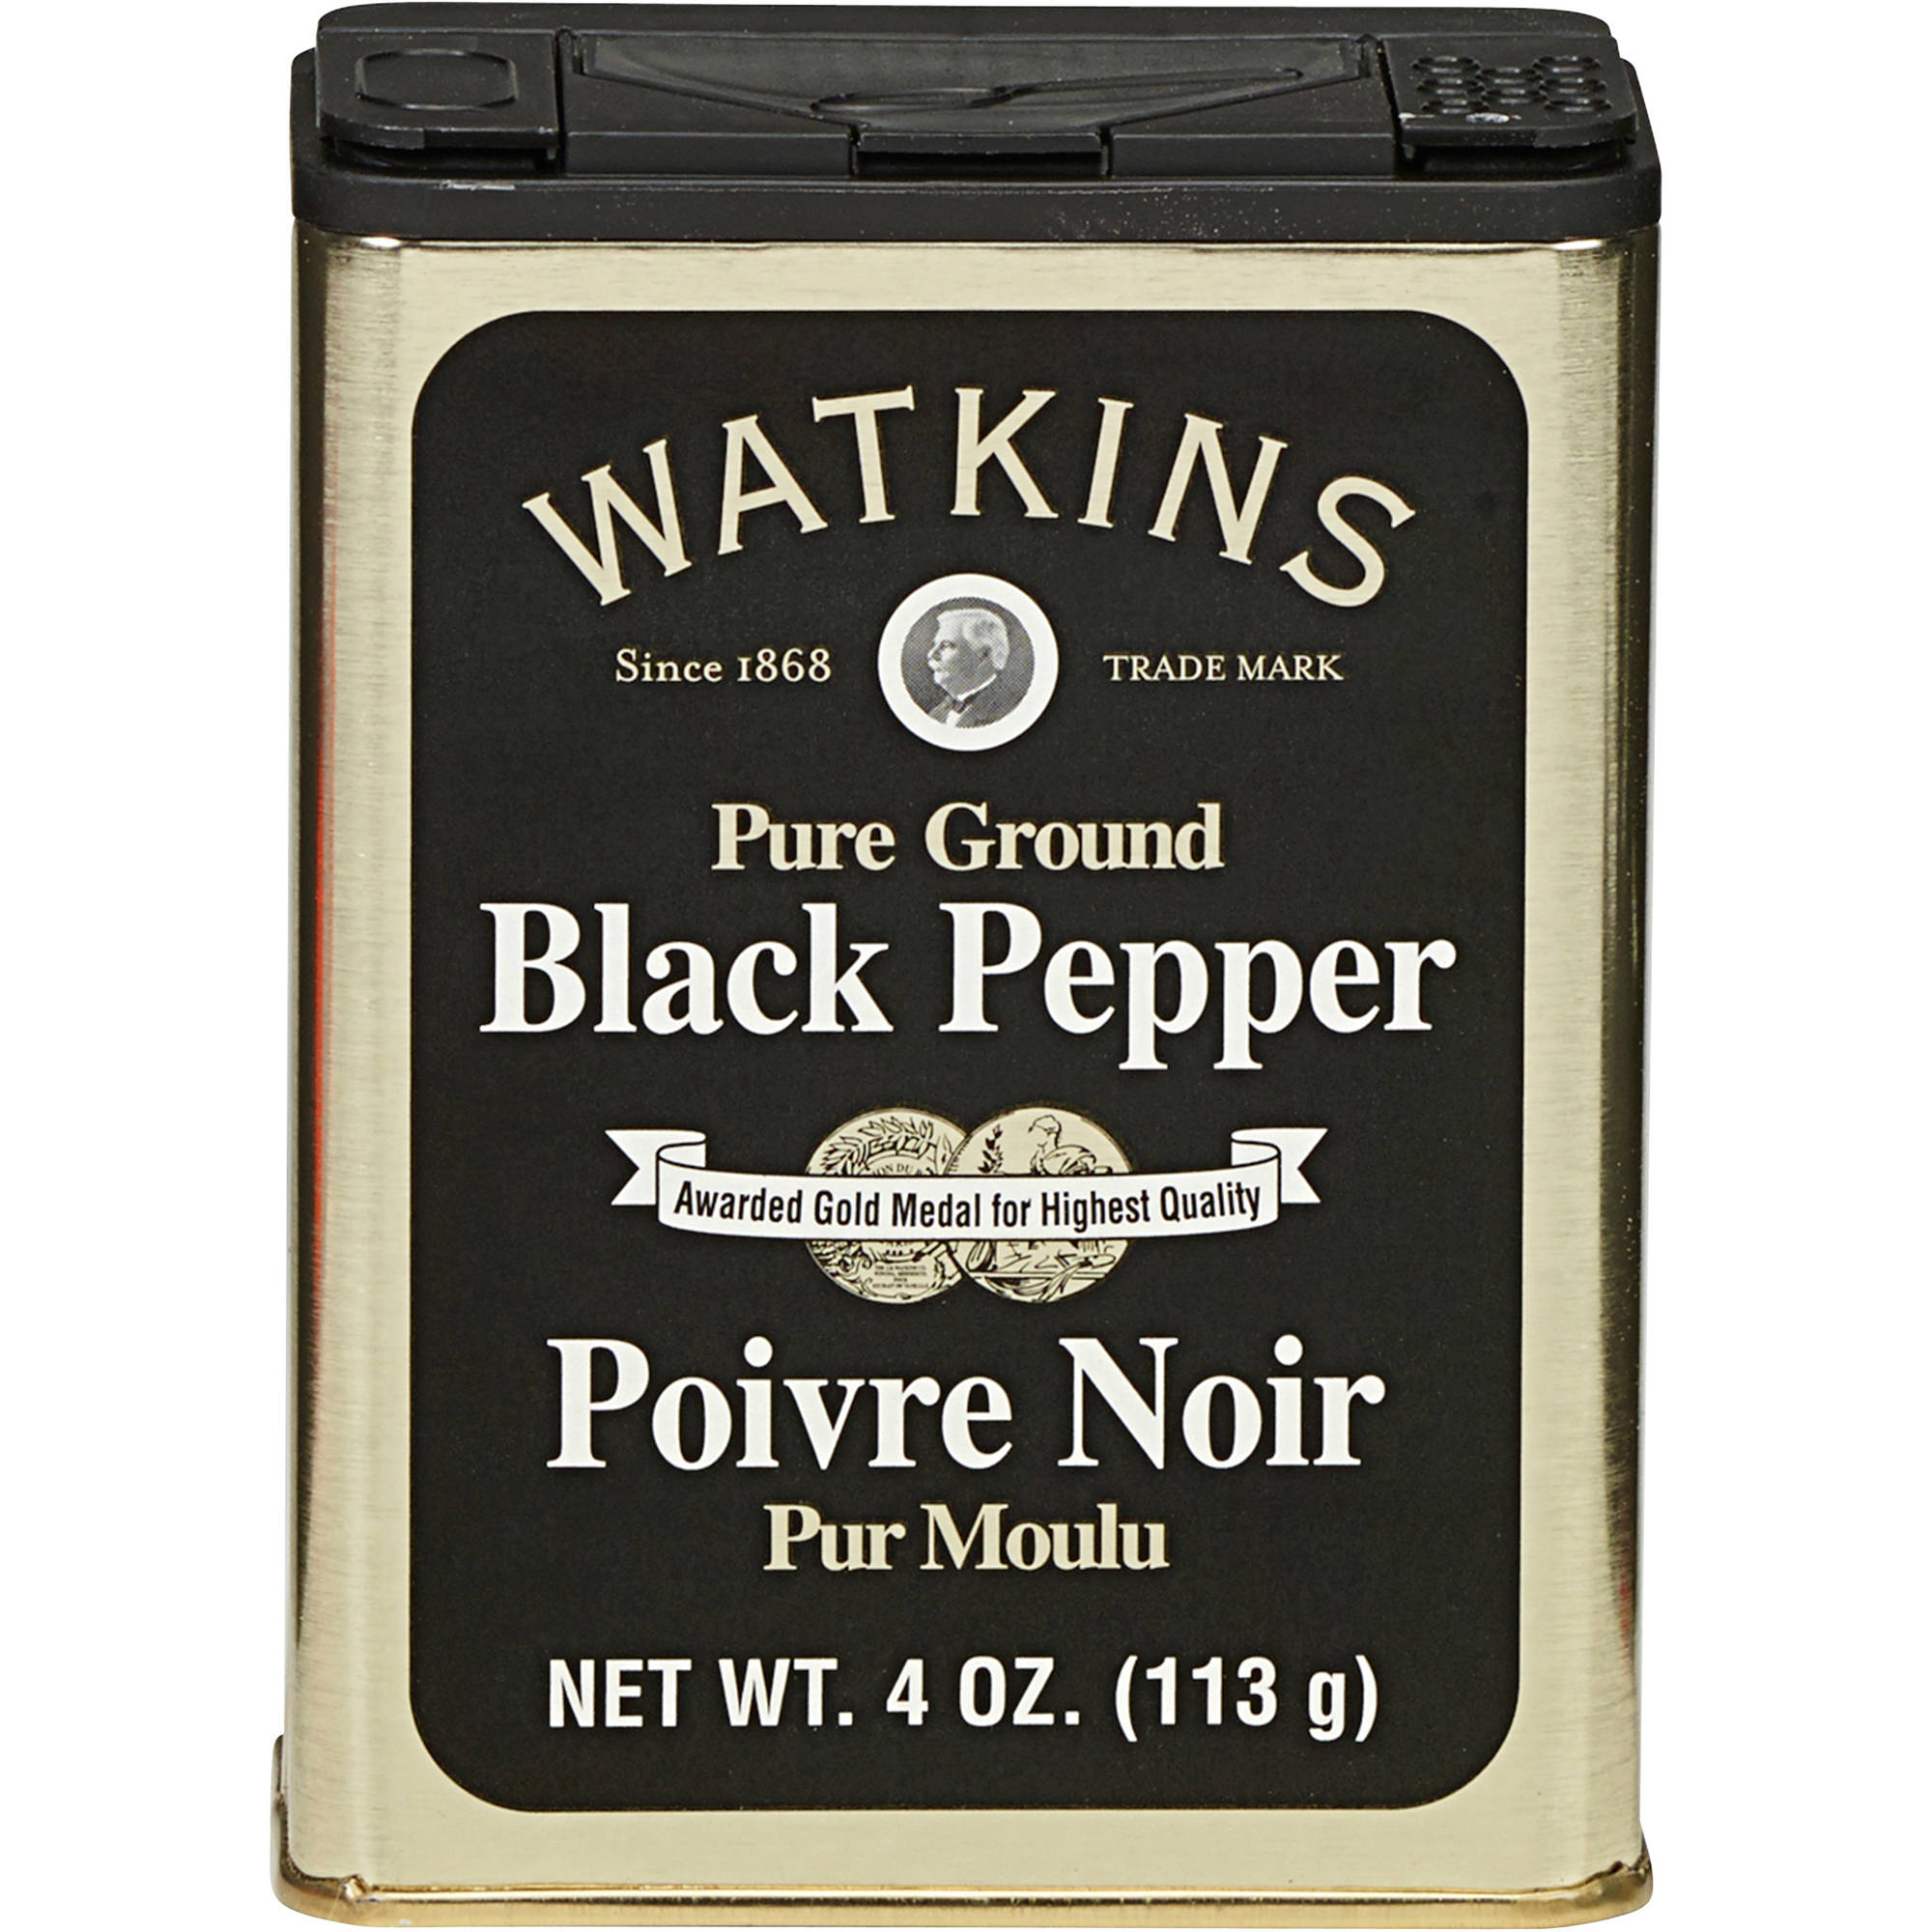 Watkins: Pure Ground Black Pepper, 4 oz